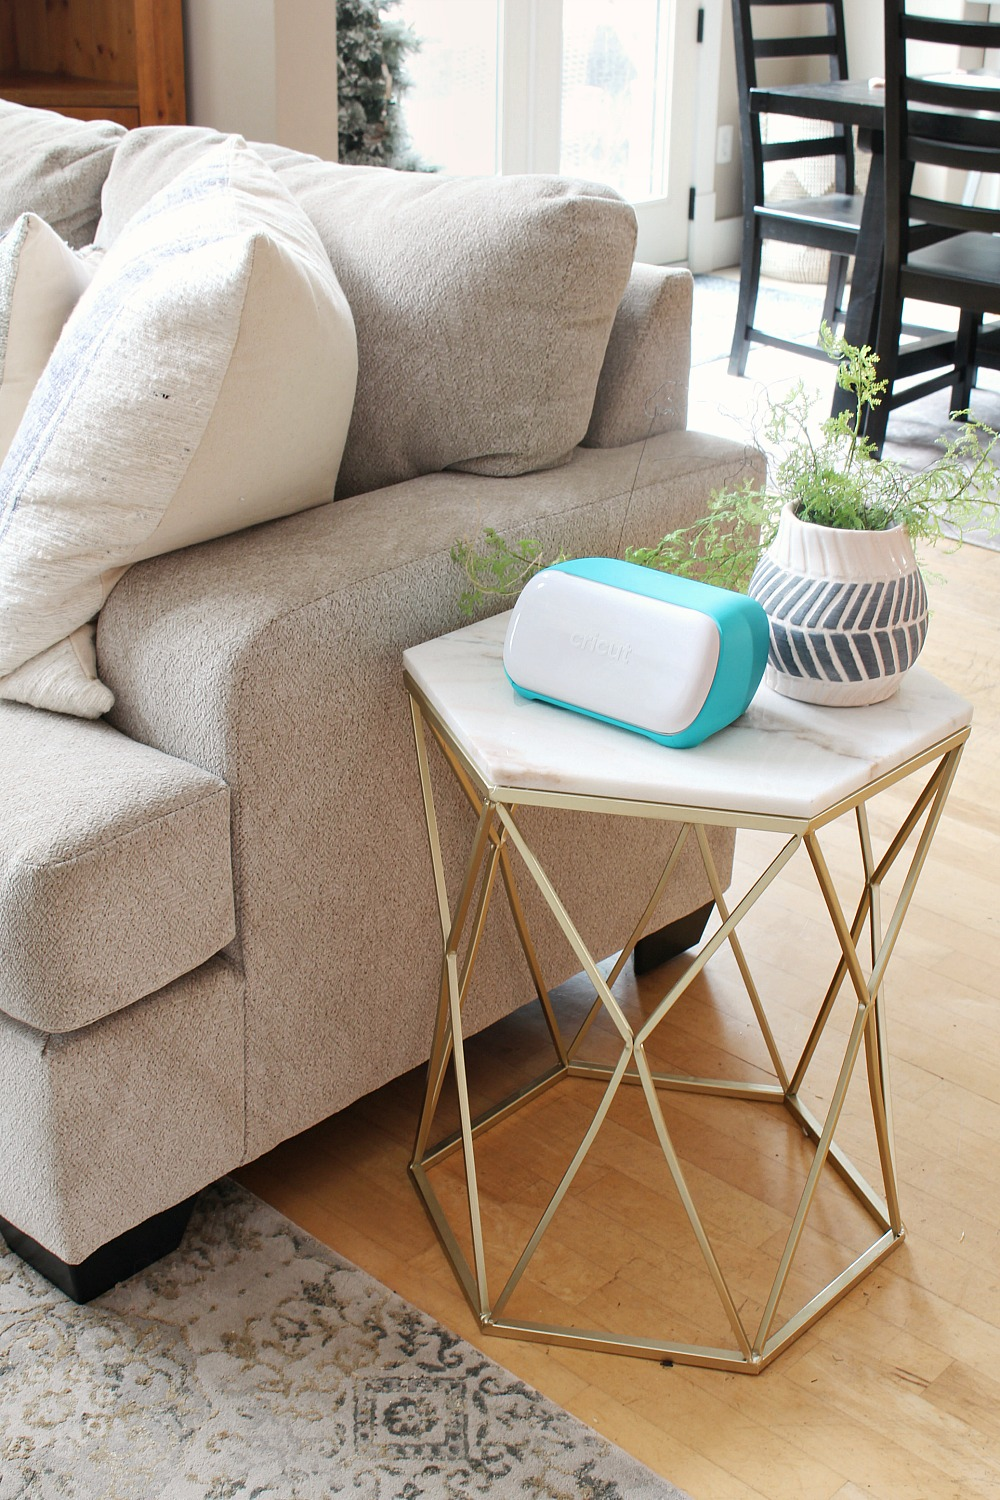 Cricut Joy smart cutting tool on a side table in a family room.